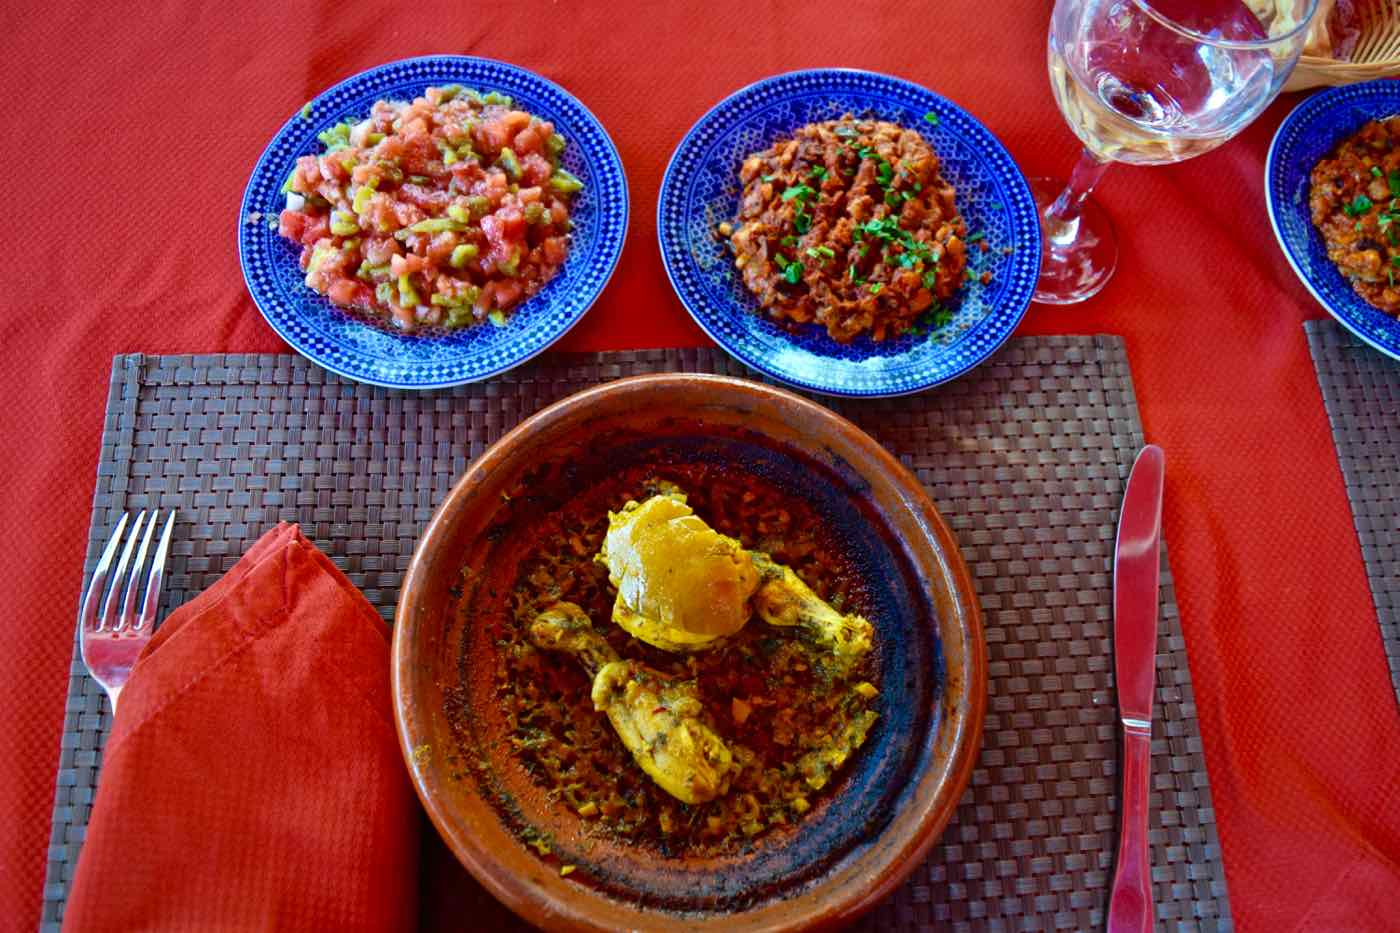 Lunch is served at La Maison Arabe Marrakech